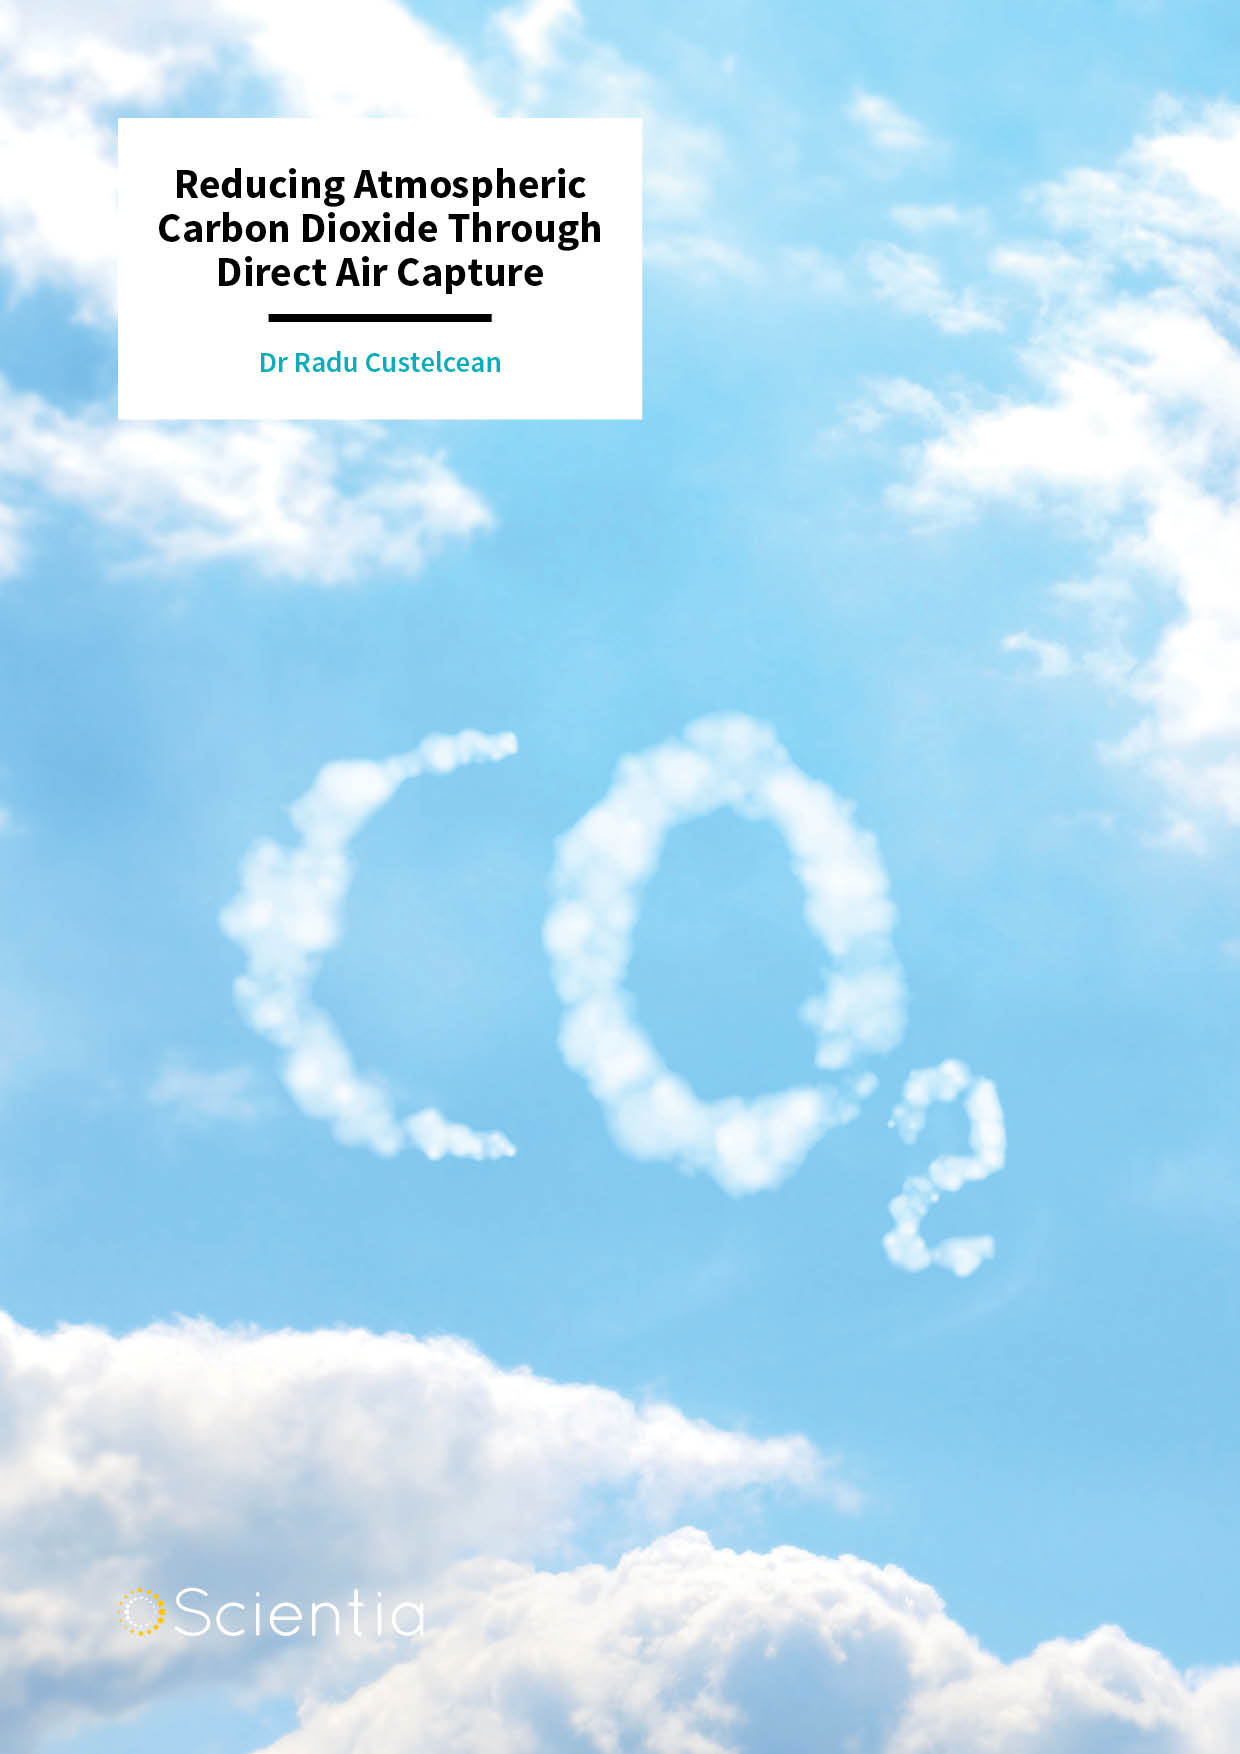 Dr Radu Custelcean  – Reducing Atmospheric Carbon Dioxide Through Direct Air Capture